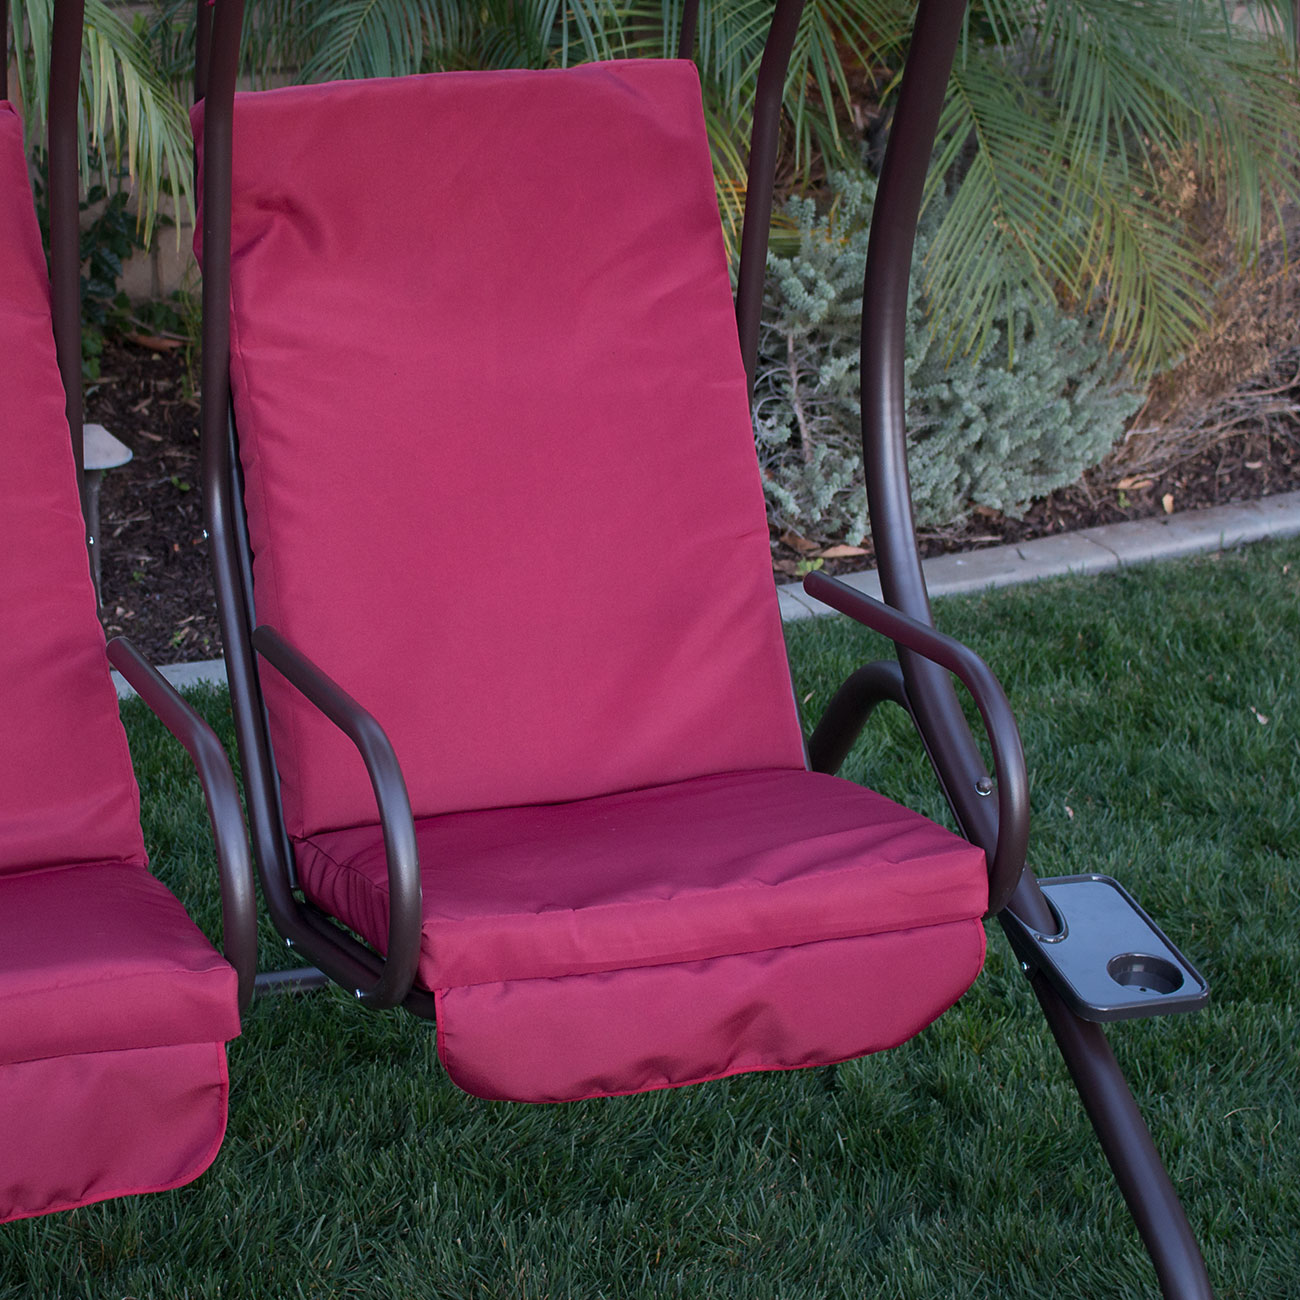 swing chair over canyon pvc patio chairs new outdoor set 2 person frame padded seat